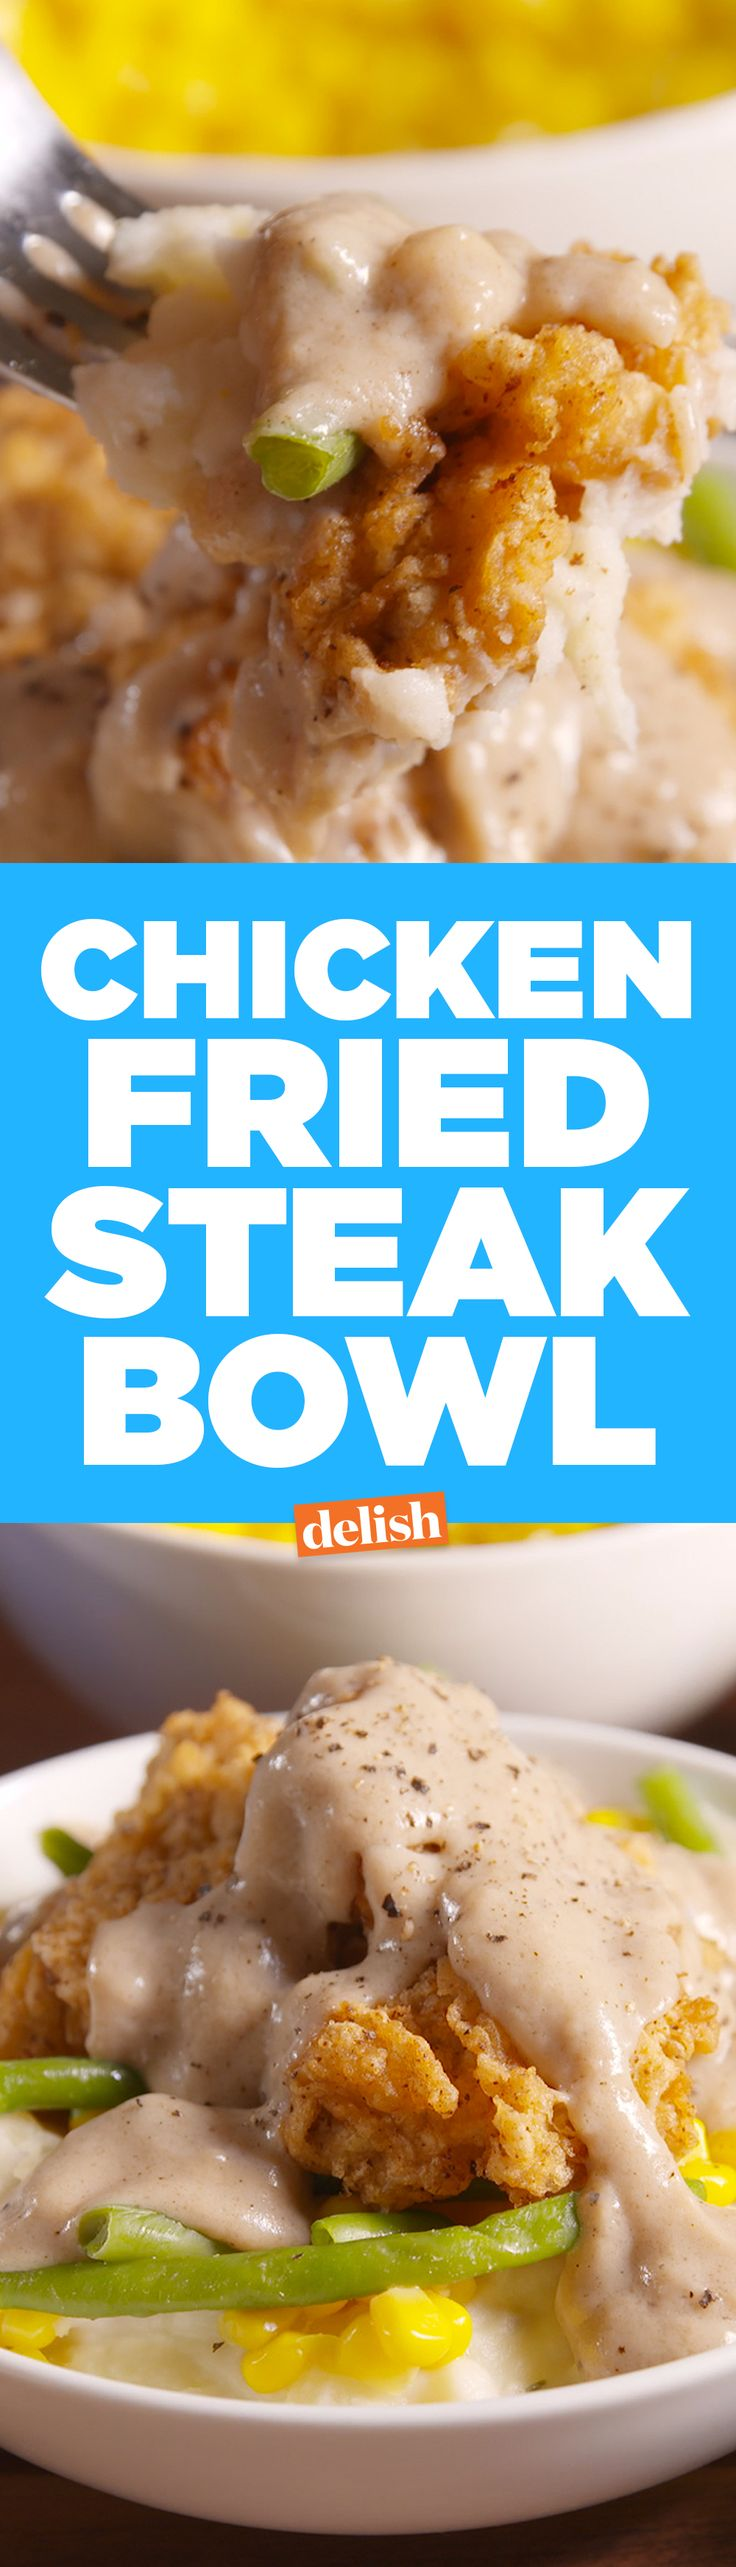 This Chicken Fried Steak Bowl will cure your winter blues. Get the recipe on Delish.com.